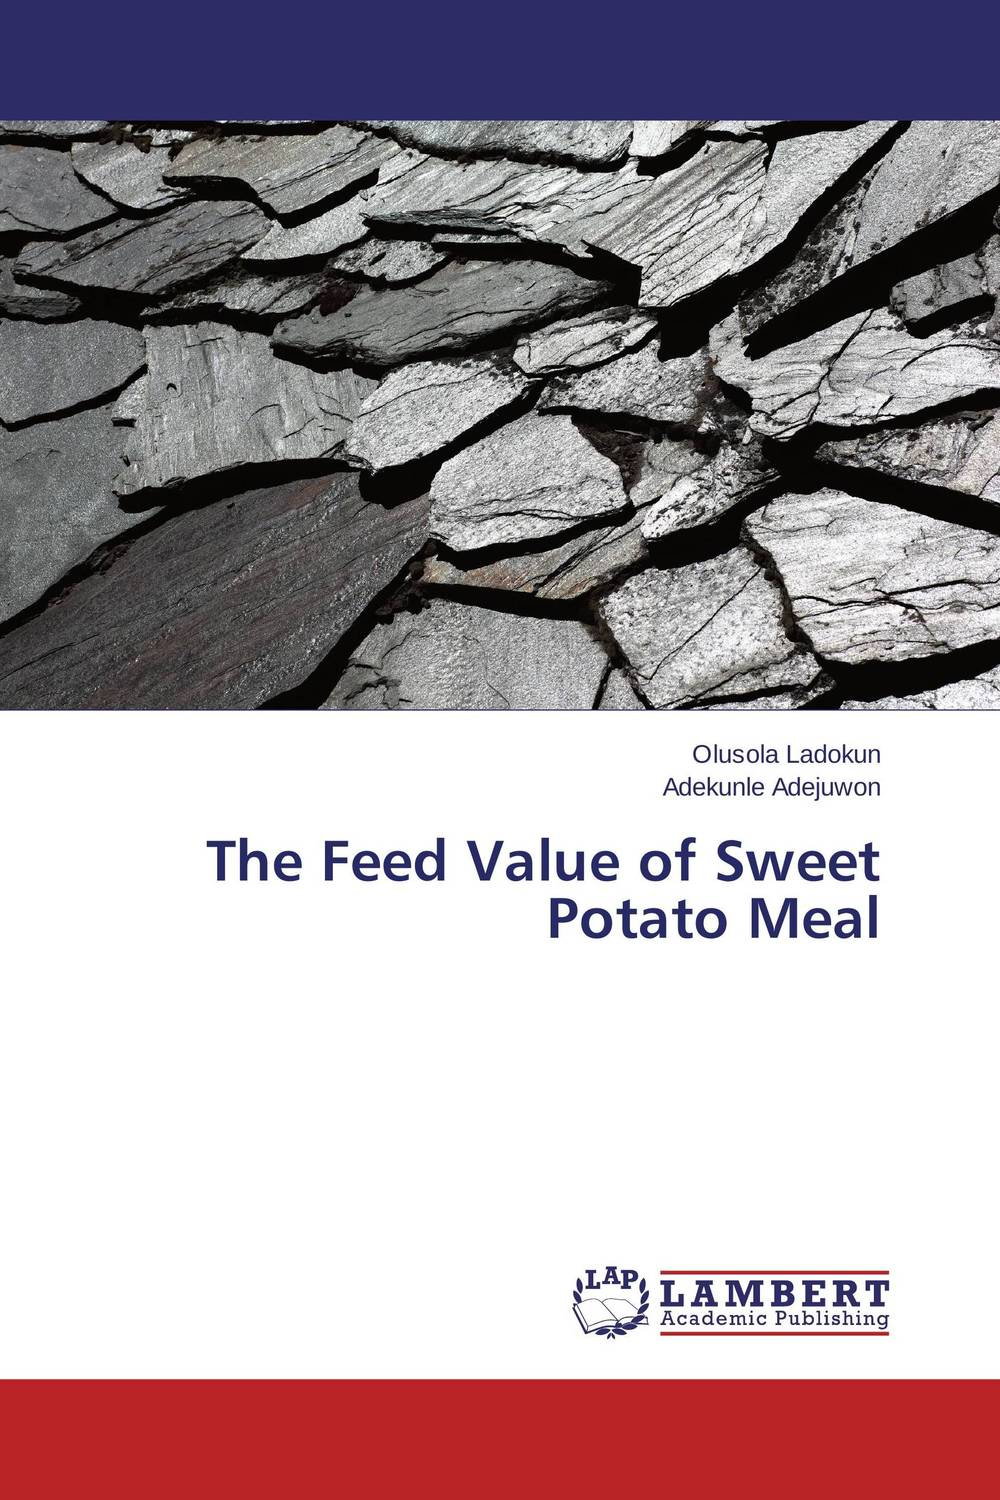 The Feed Value of Sweet Potato Meal the first feed study